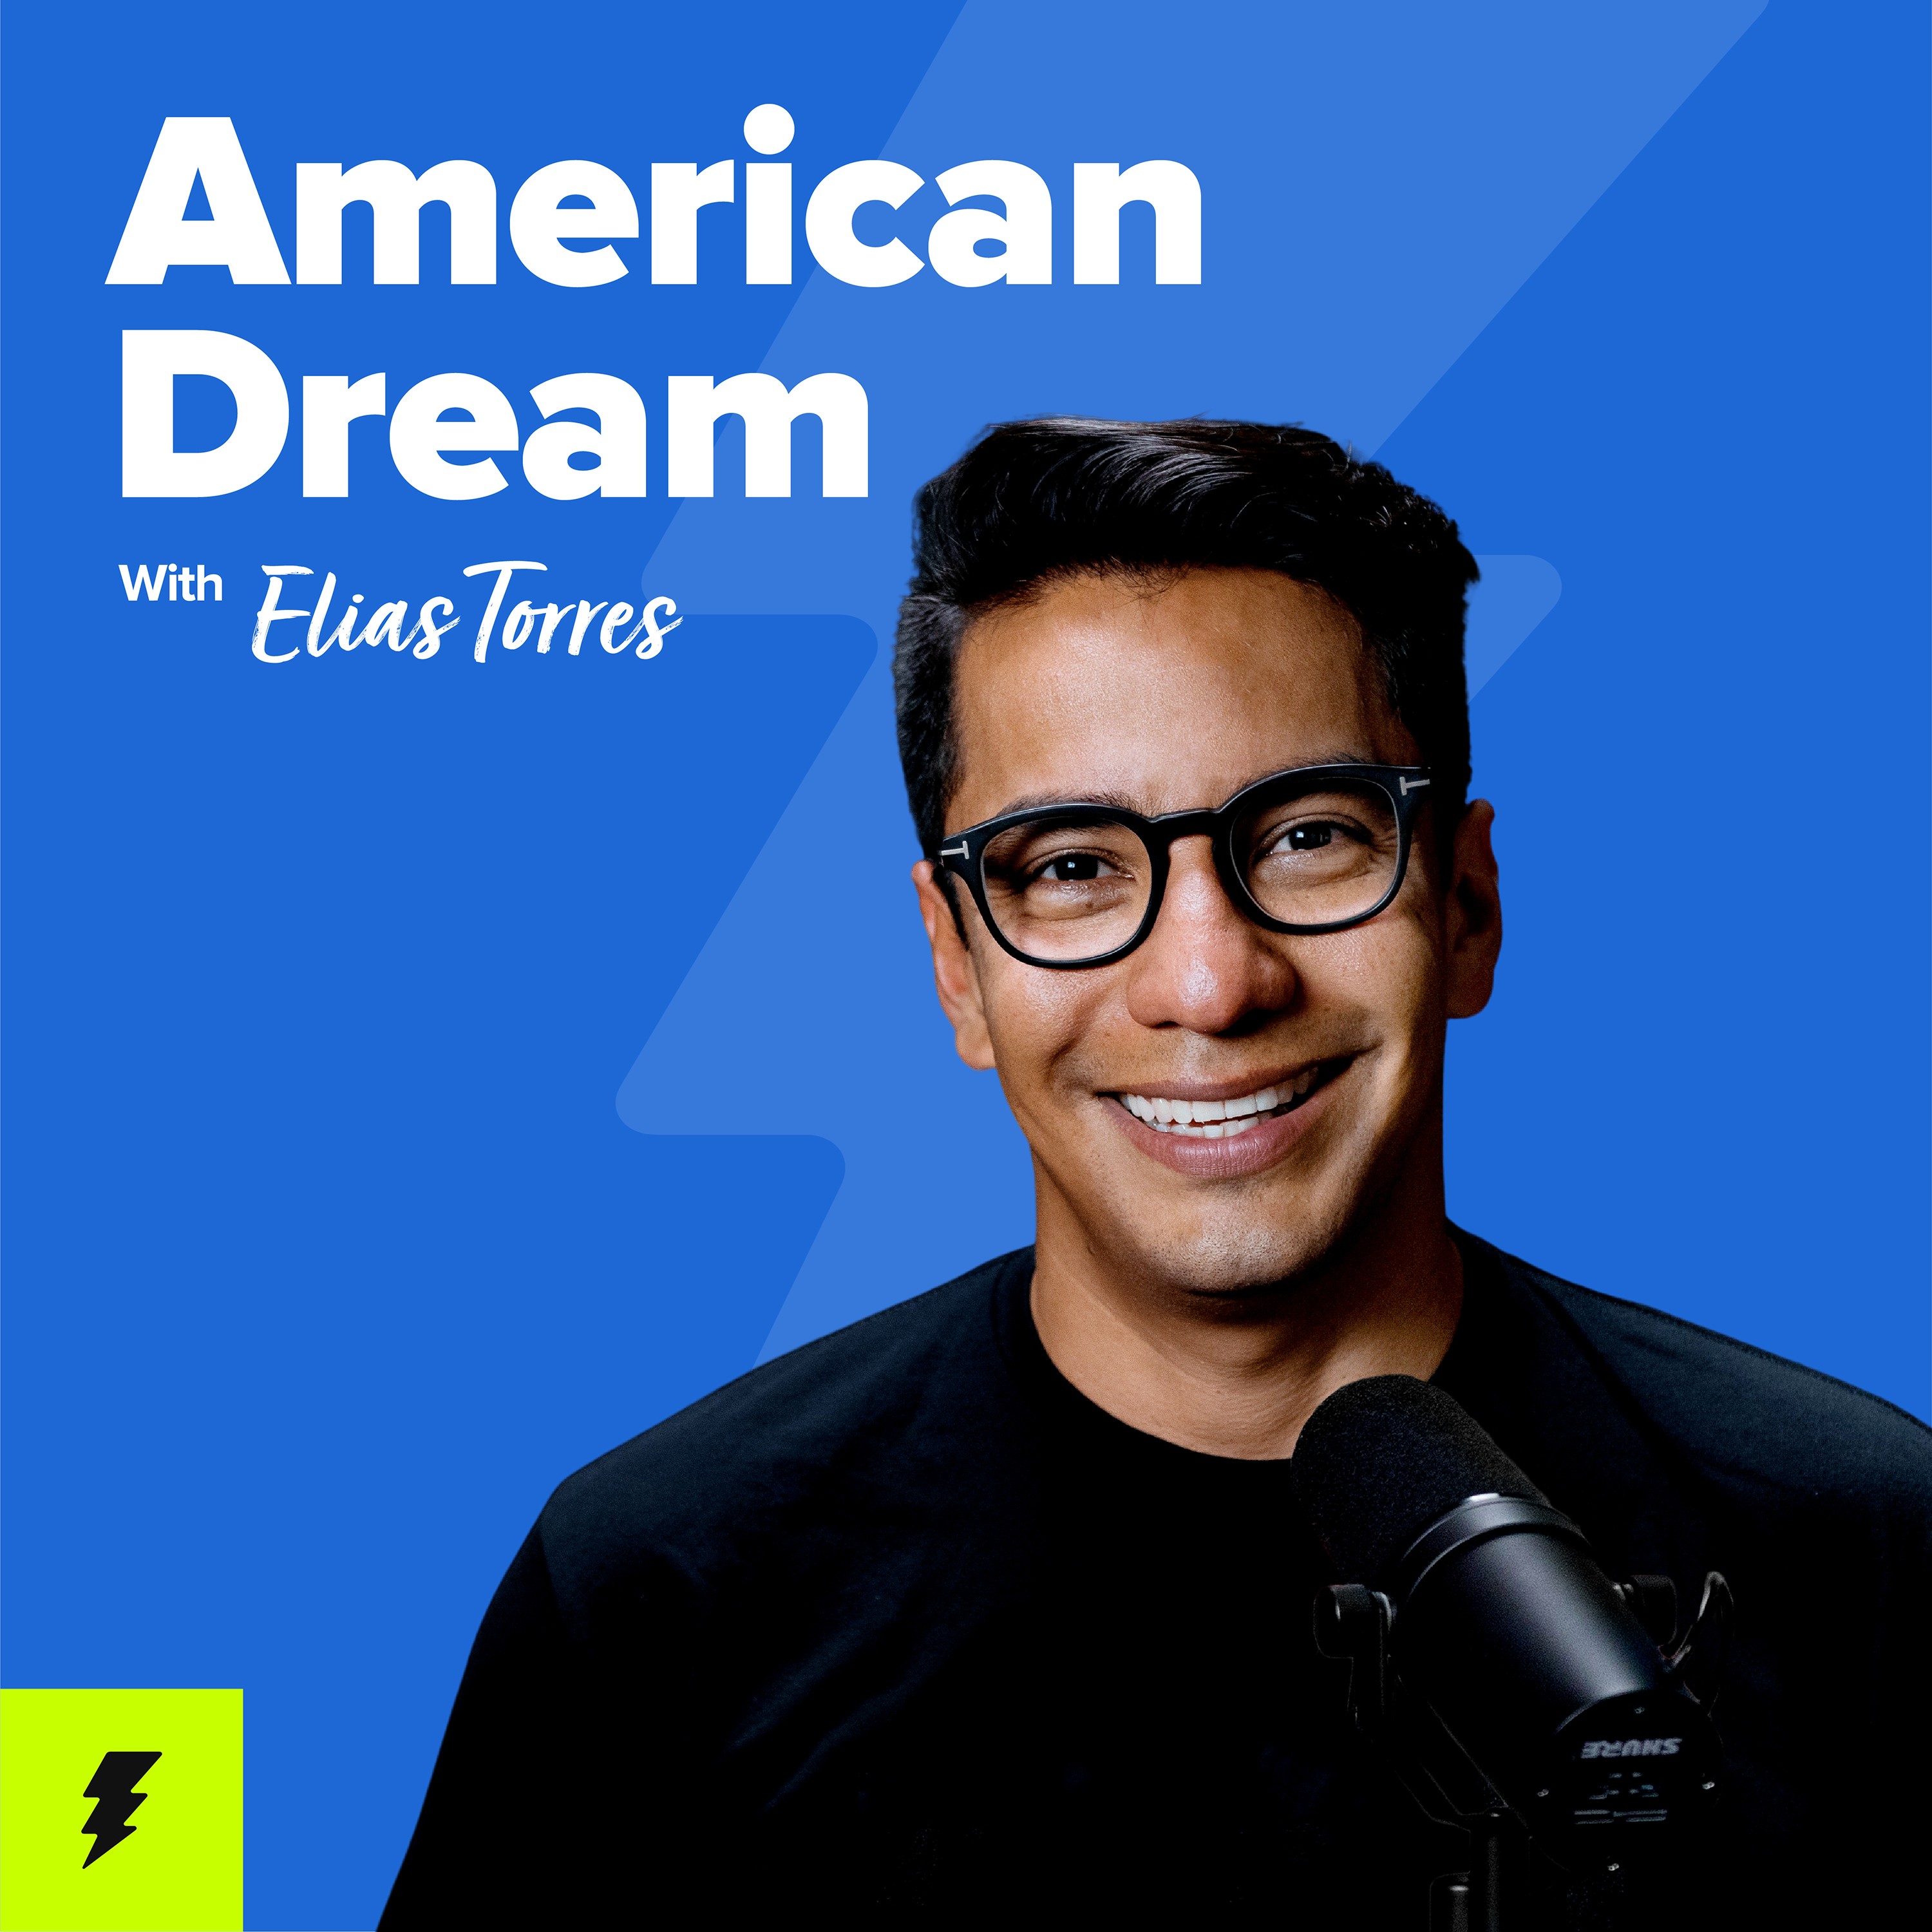 Introducing The American Dream